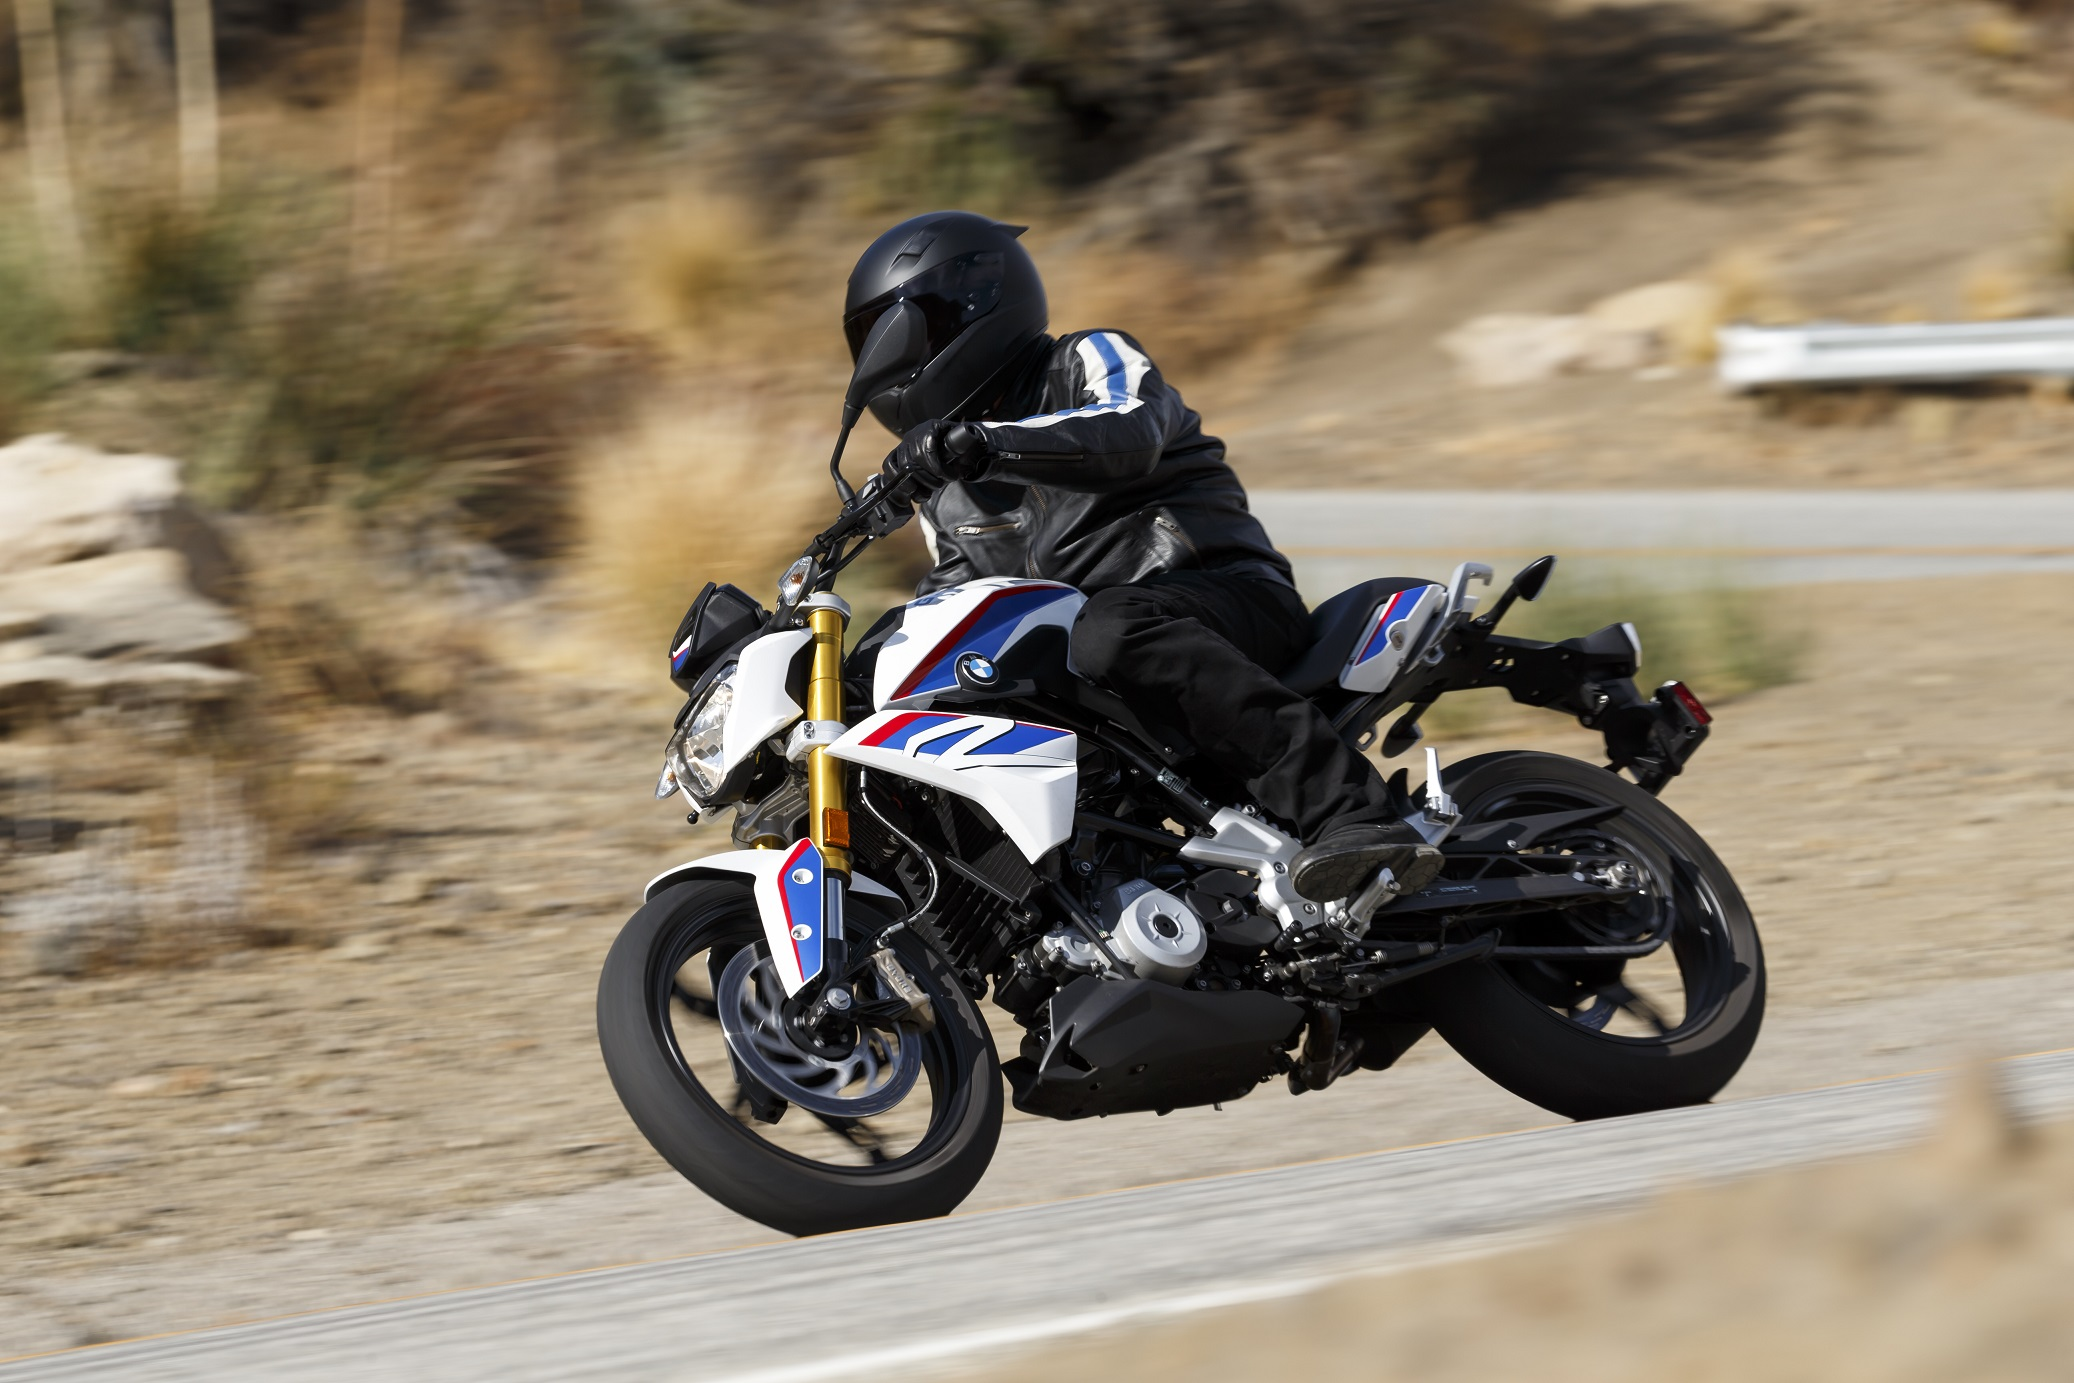 The BMW G 310 R is a capable performer in cityscapes and small country roads.